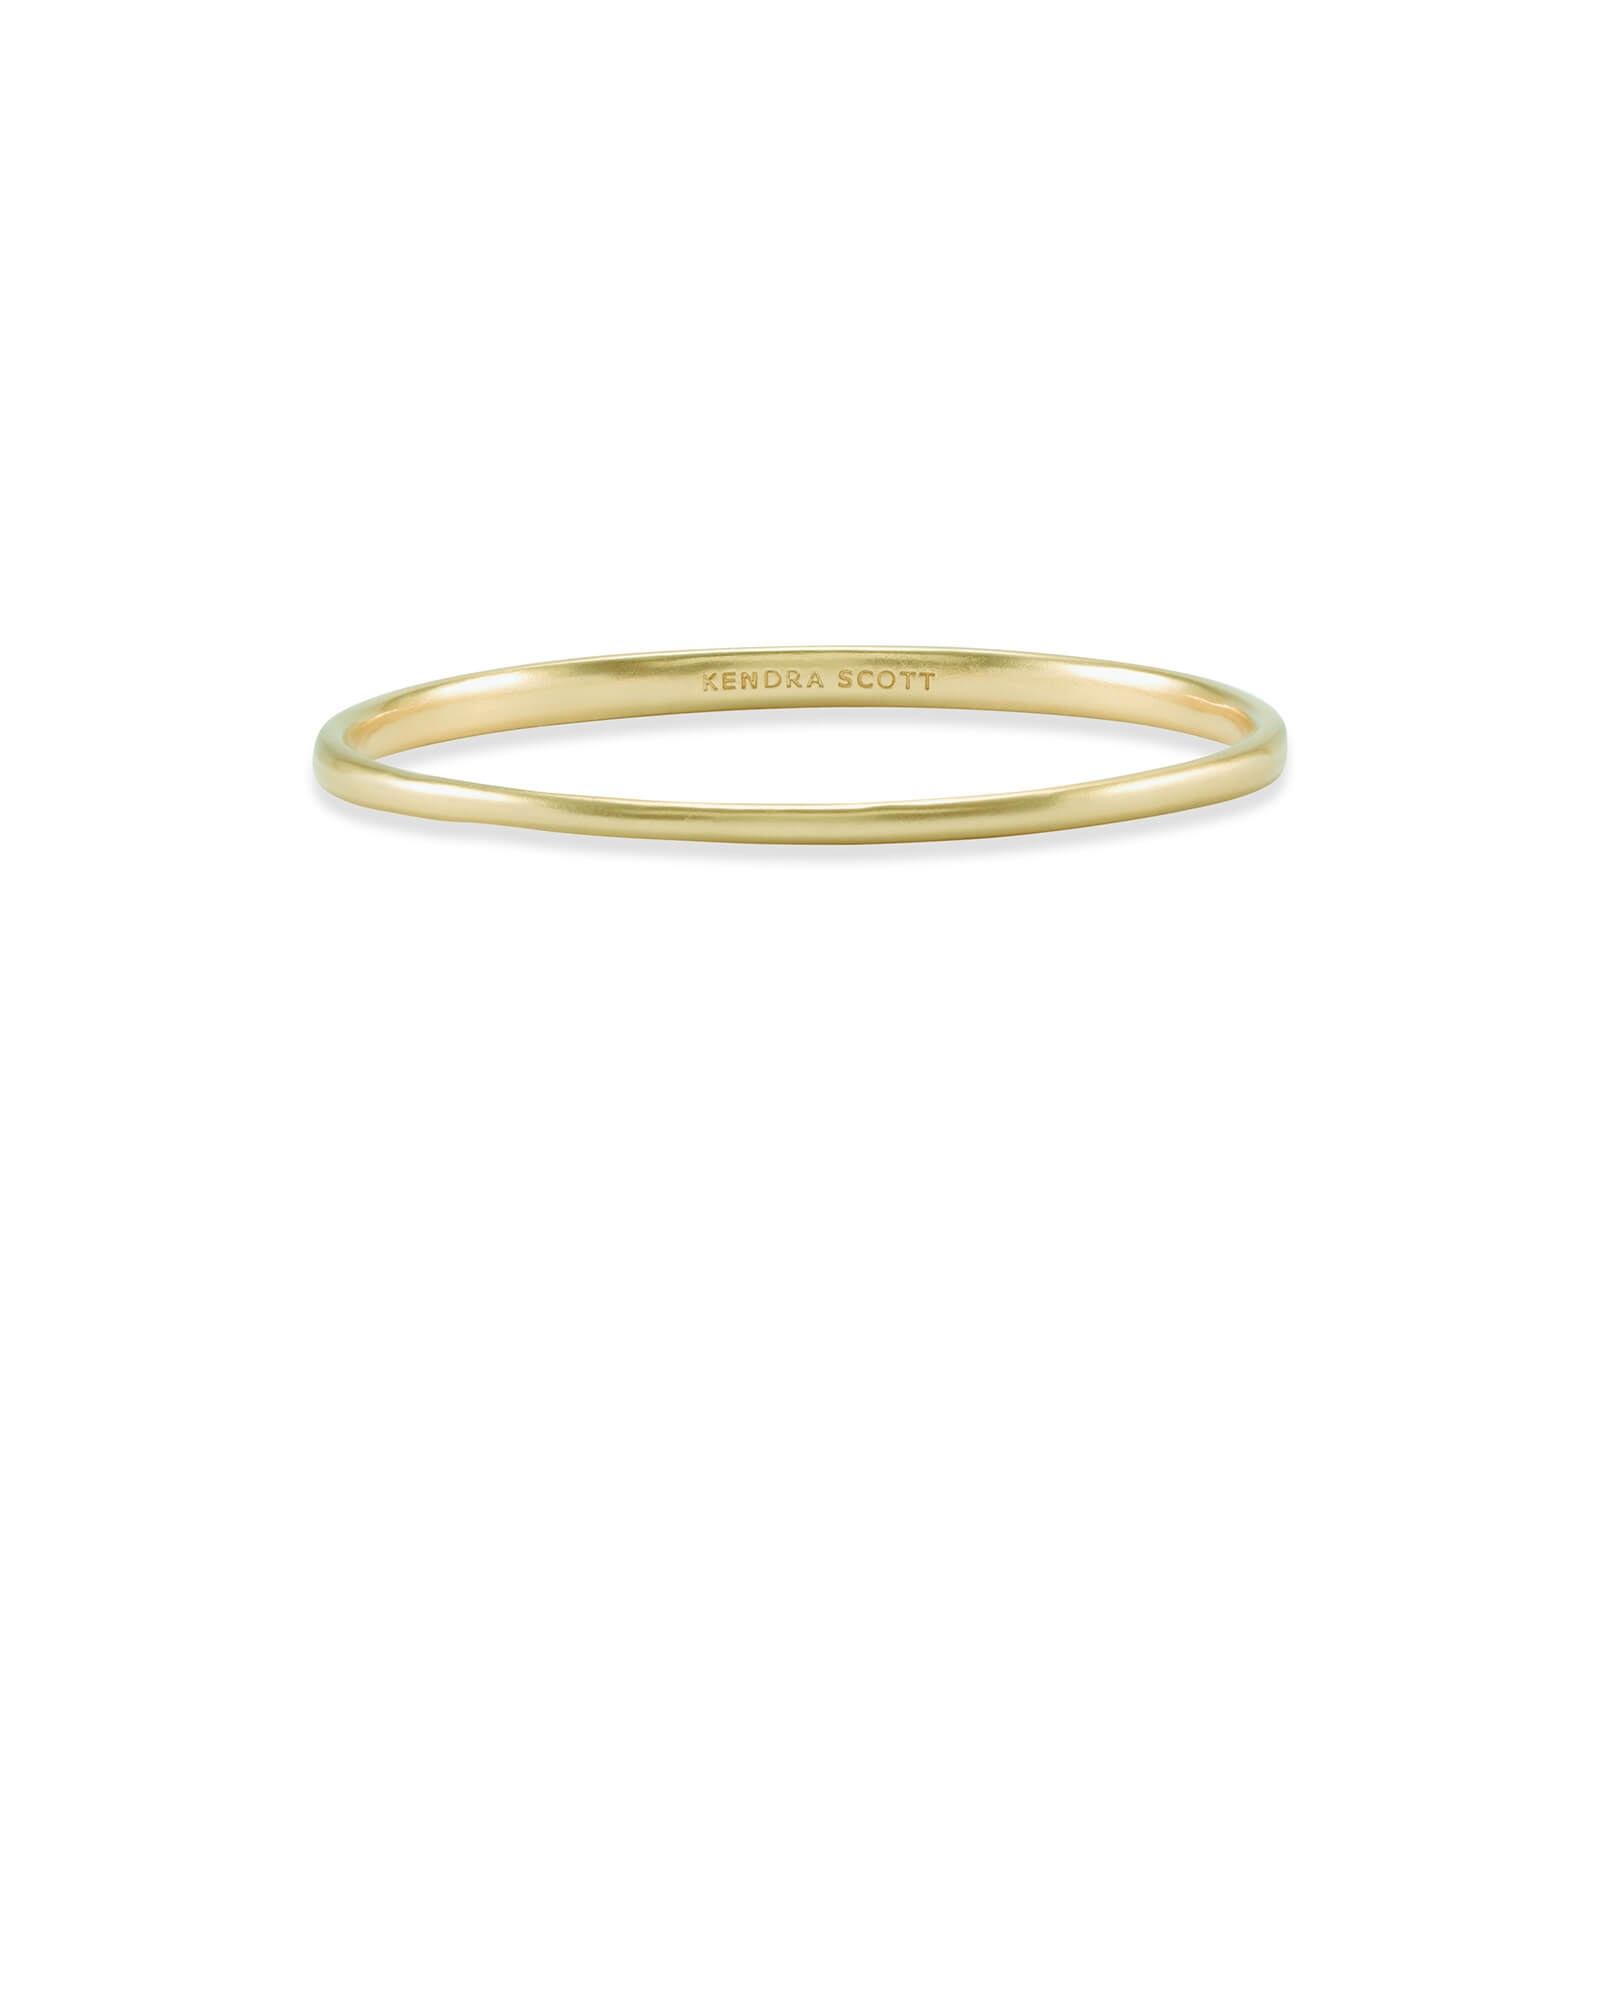 Graduated Bangle Bracelet in Gold